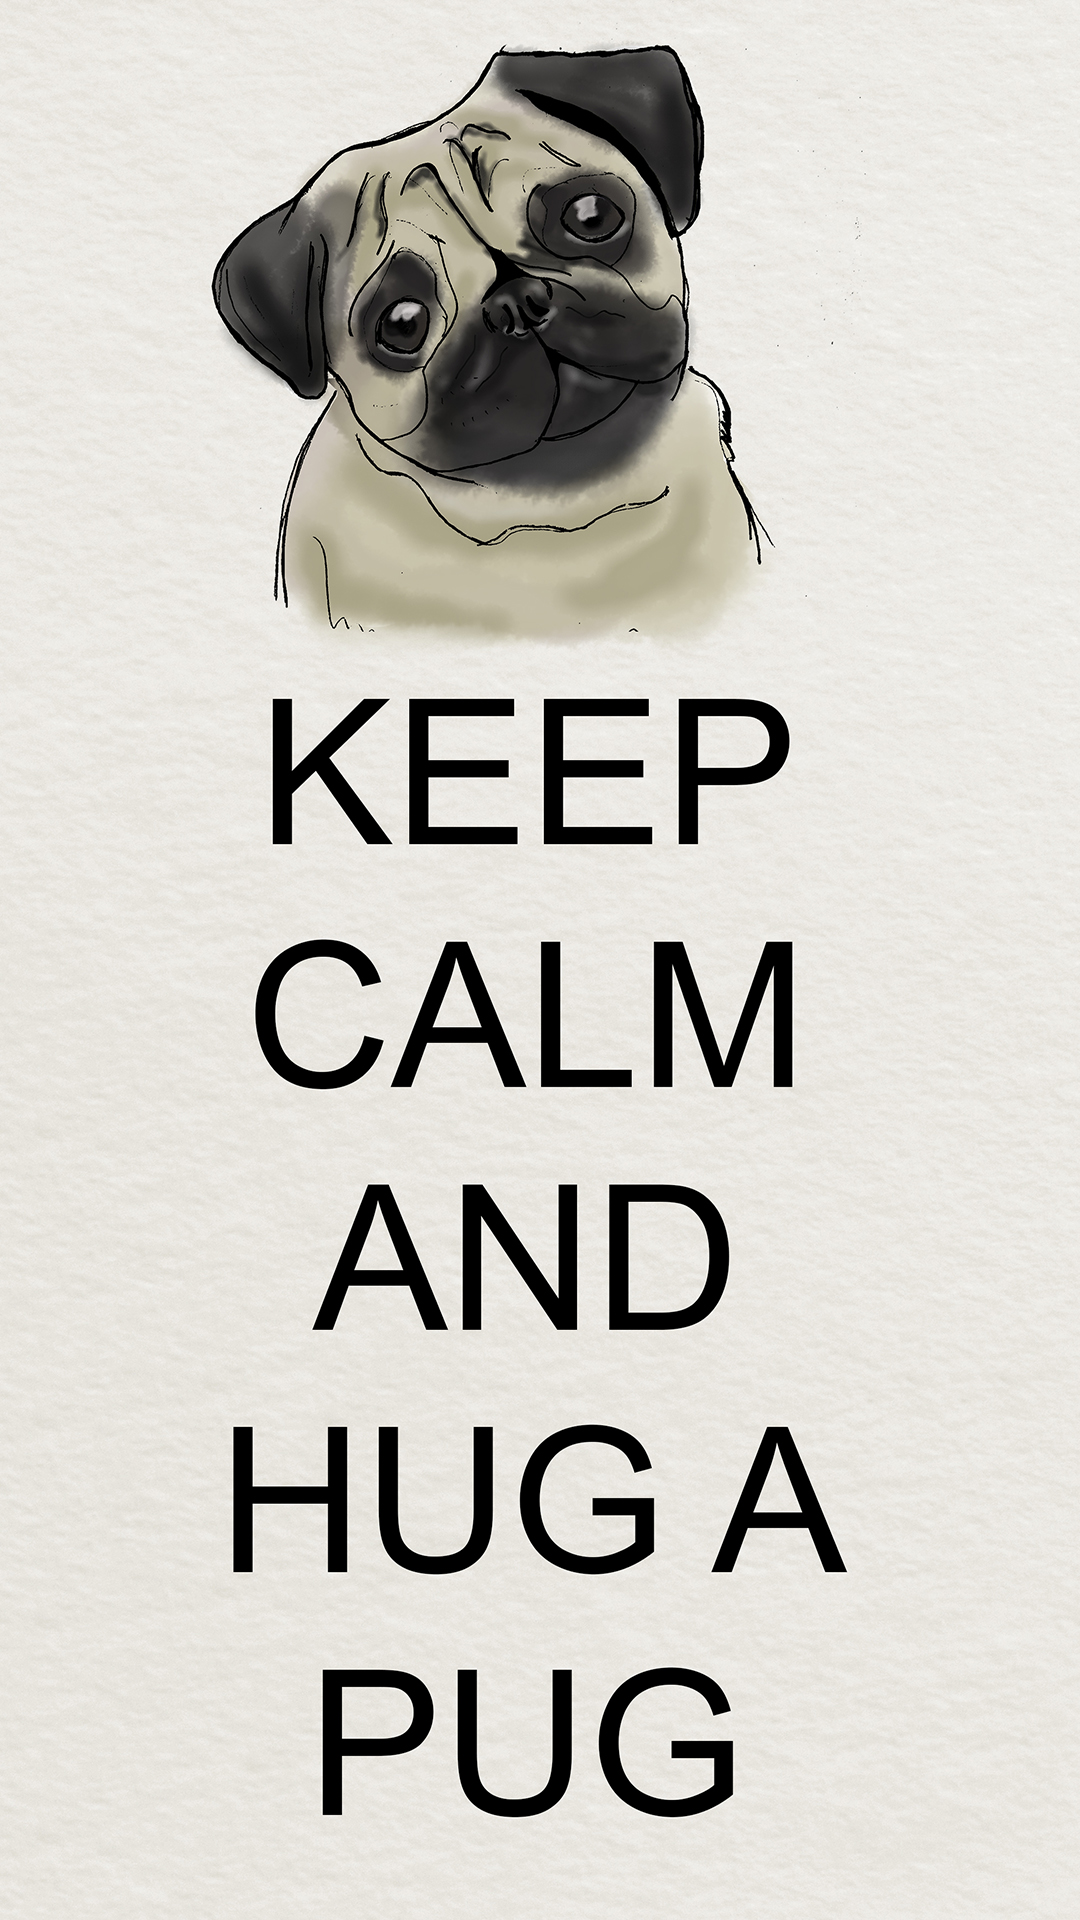 Cute Wallpapers Iphone 6 Plus Phone Wallpaper Keep Calm And Hug A Pug The Pug Diary